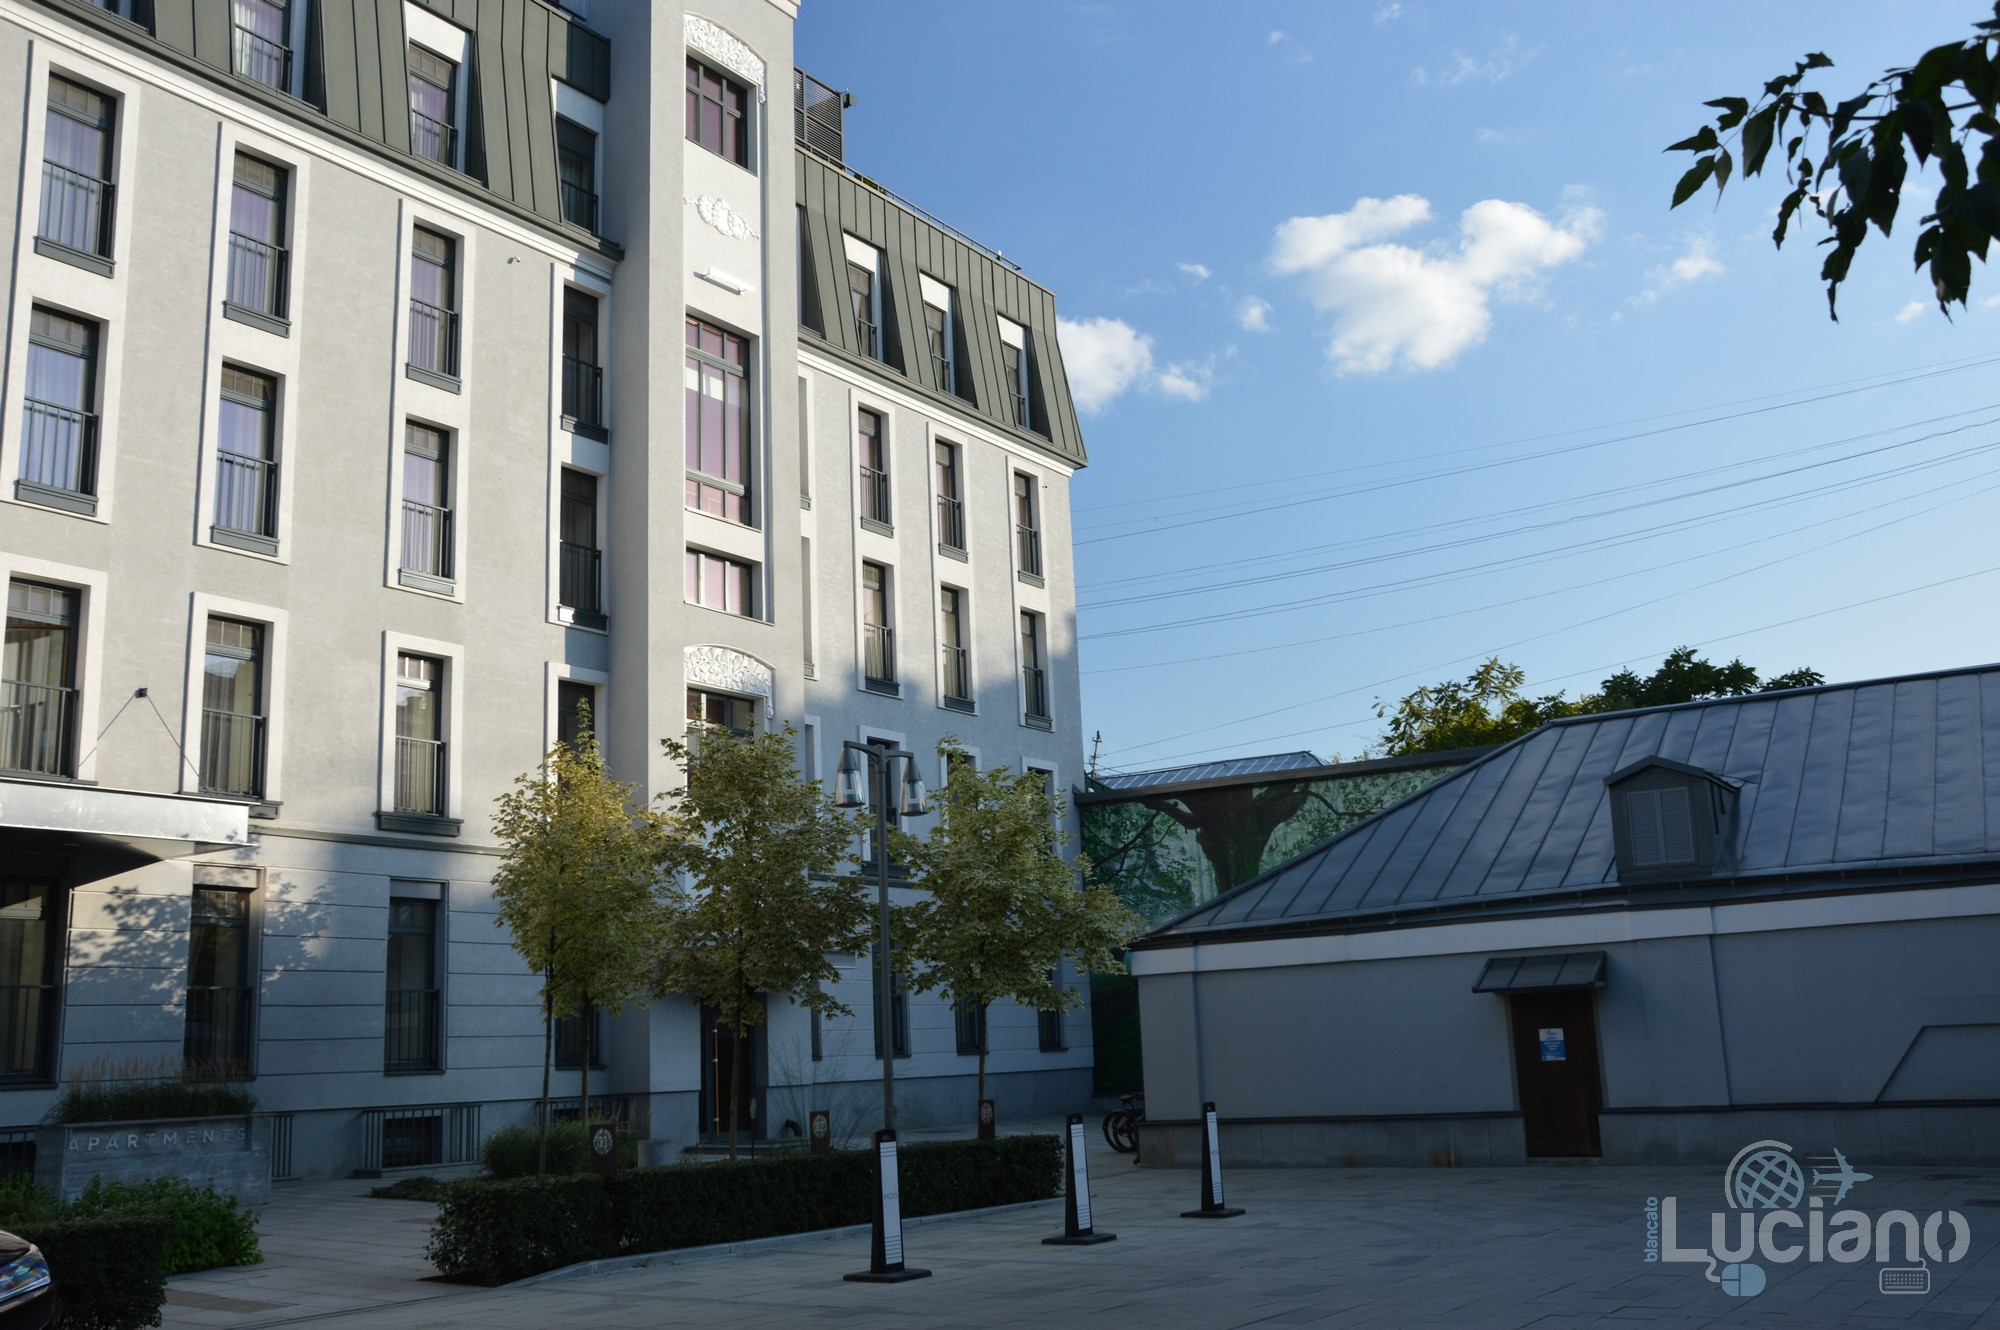 Moss Boutique Hotel - Mosca - Russia